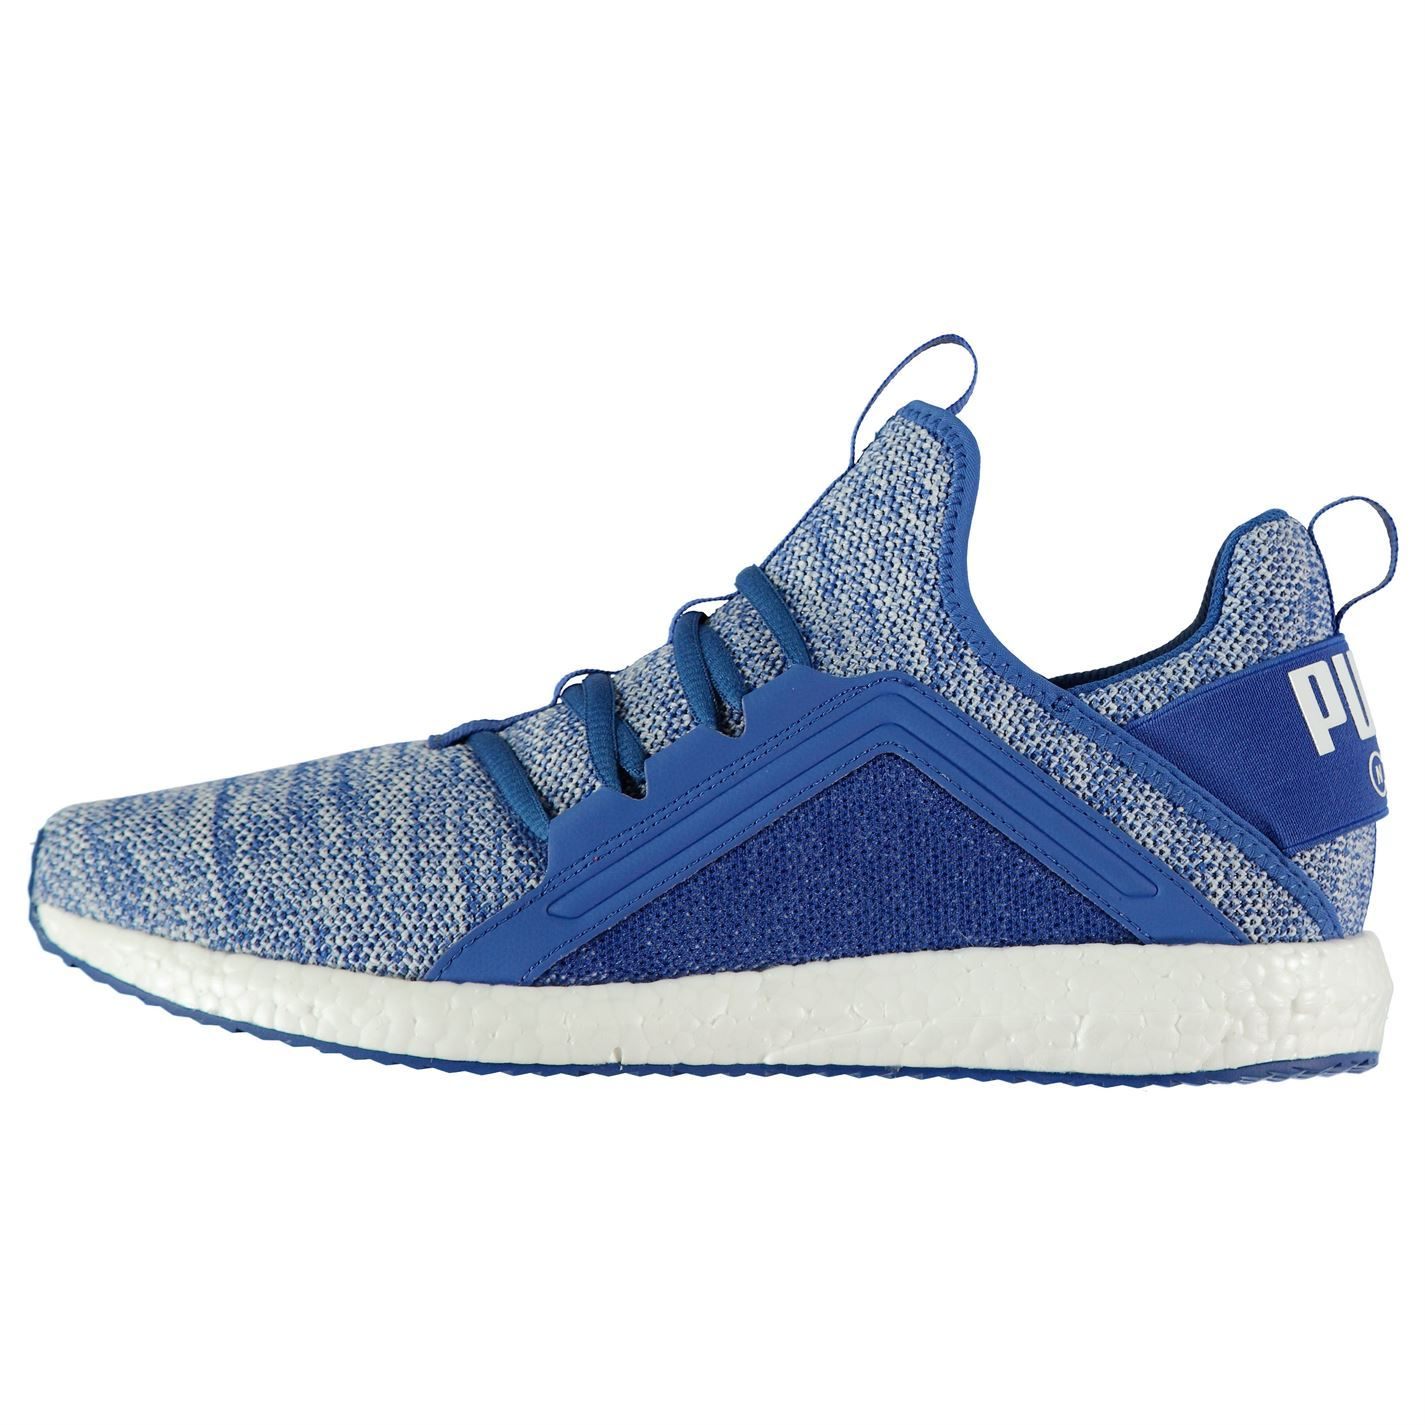 1b88e59062 Details about Puma Mega NGRY Knit Trainers Mens Blue White Athletic  Sneakers Shoes